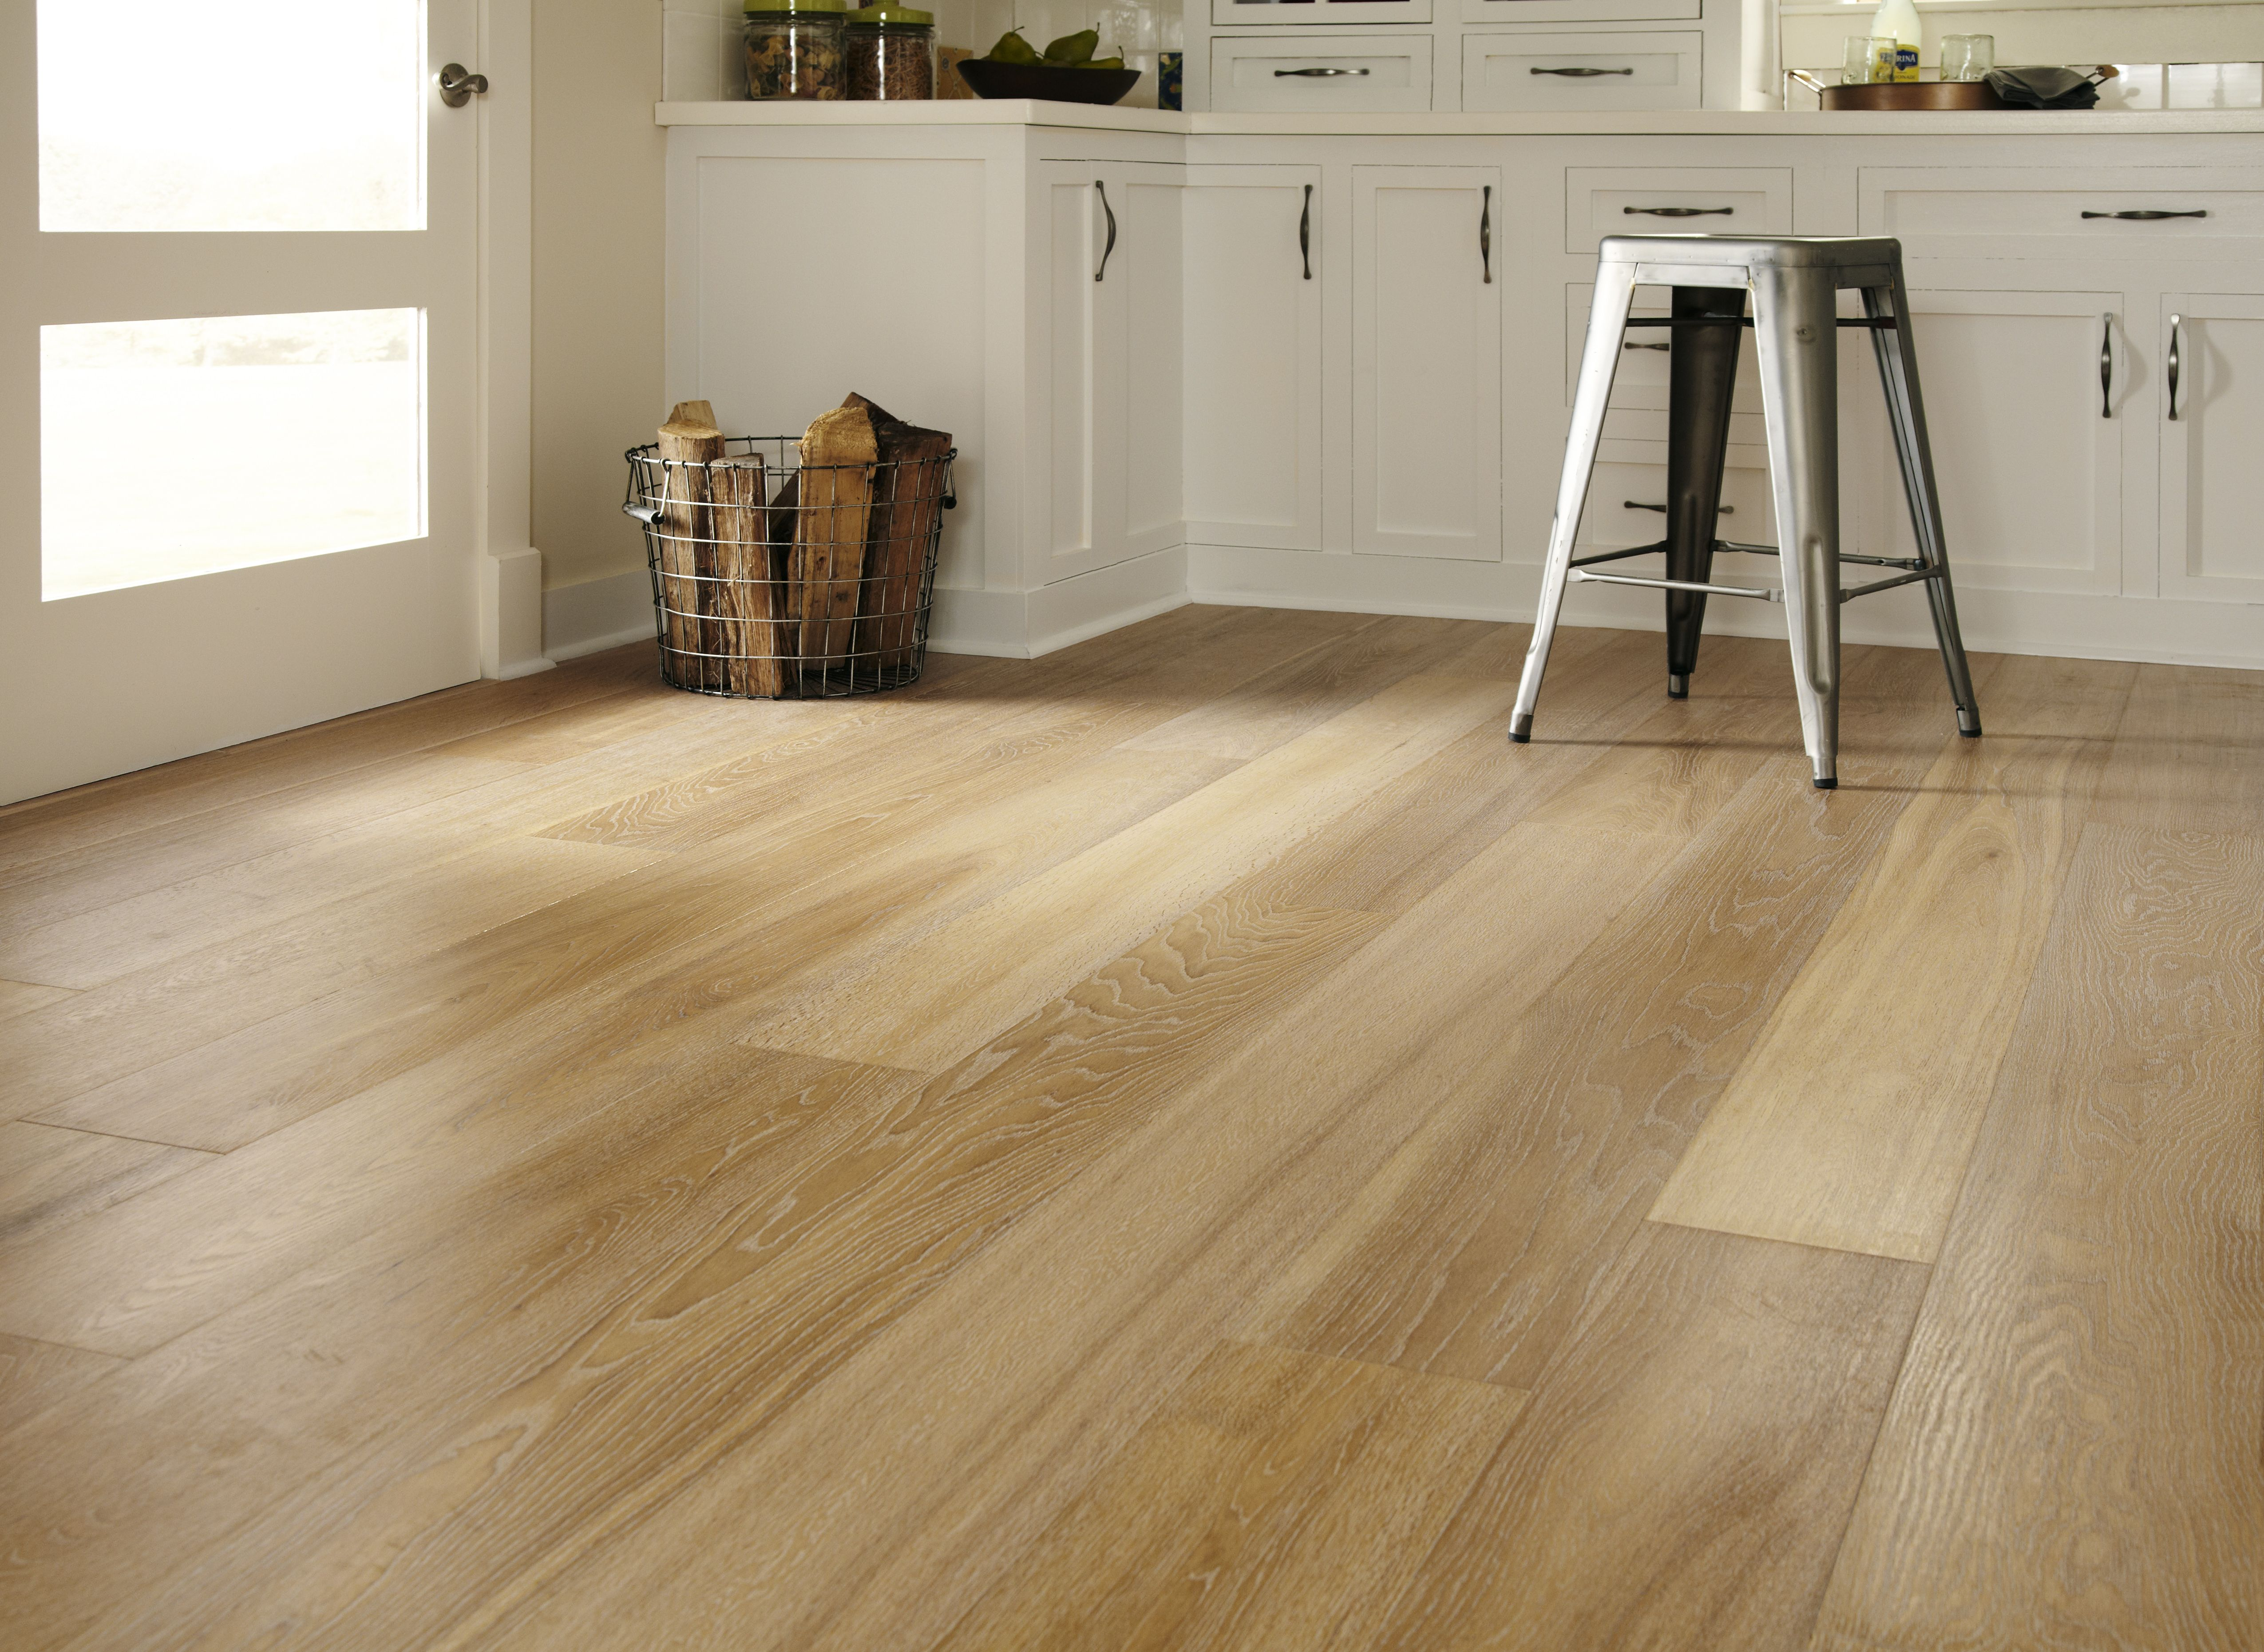 Montage European Oak S Vintage Hardwood Flooring Captures